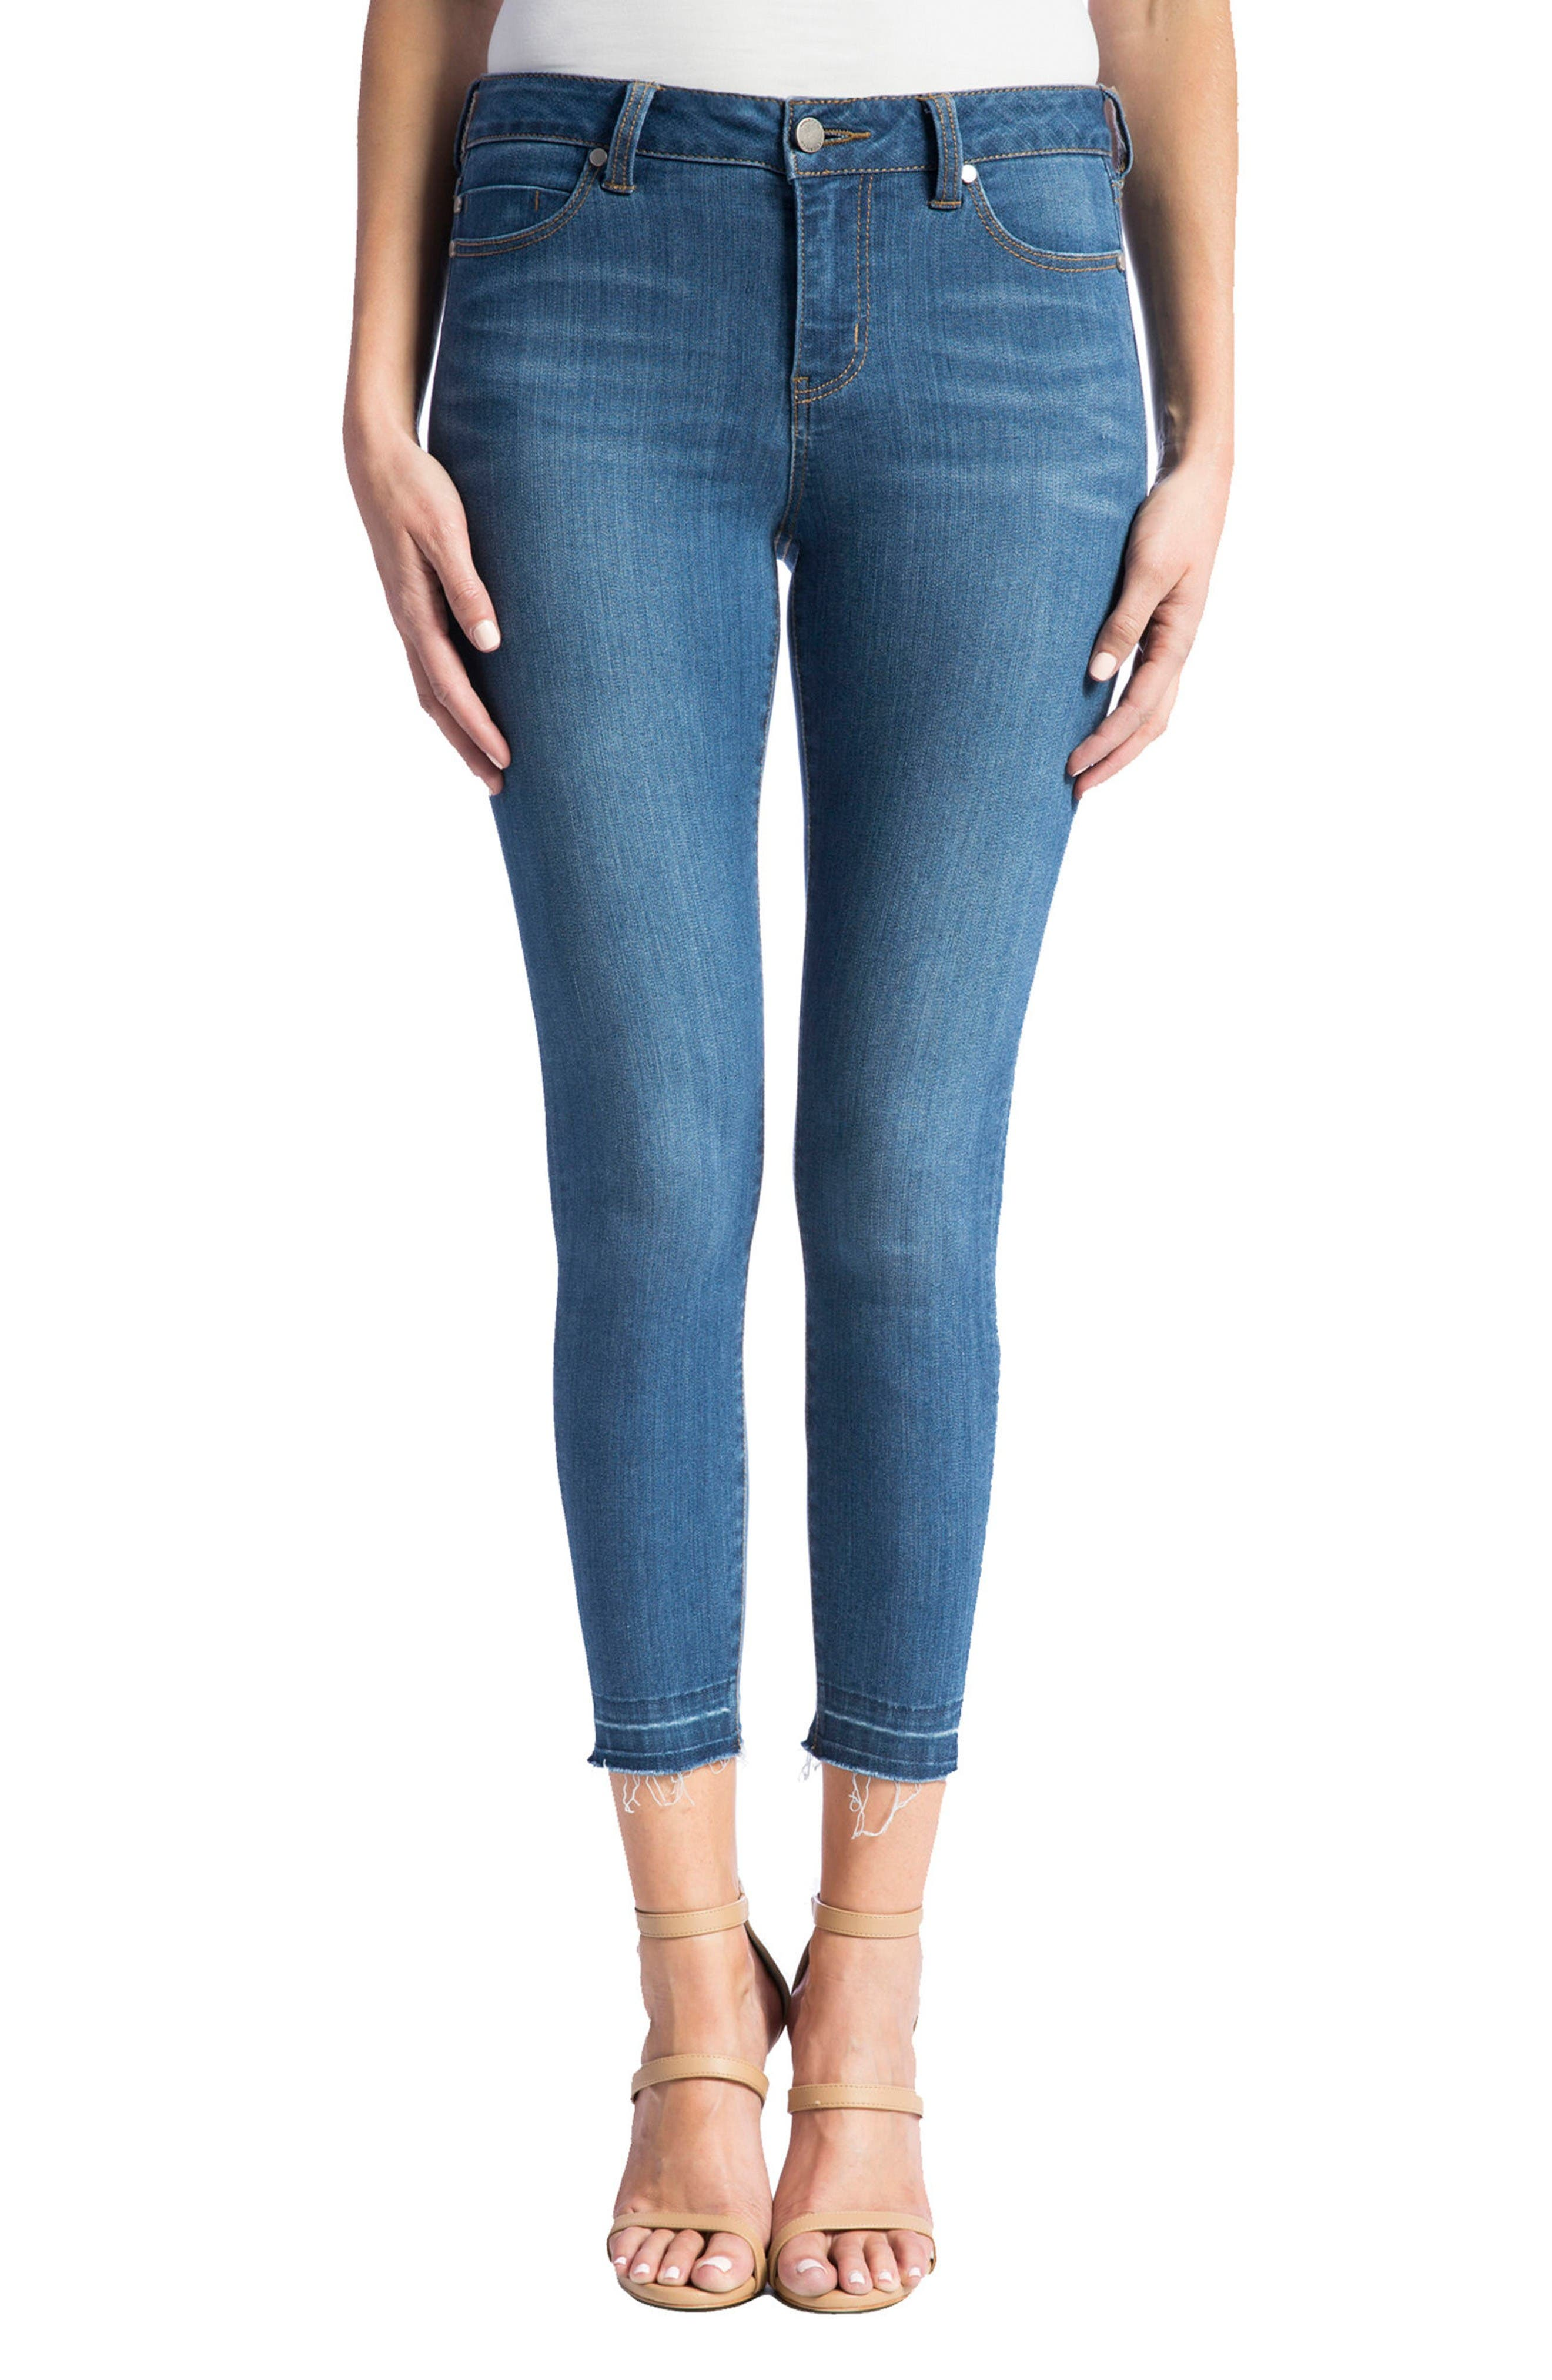 Liverpool Jeans Company Avery High Rise Release Hem Stretch Crop Skinny Jeans (Coronado Mid)